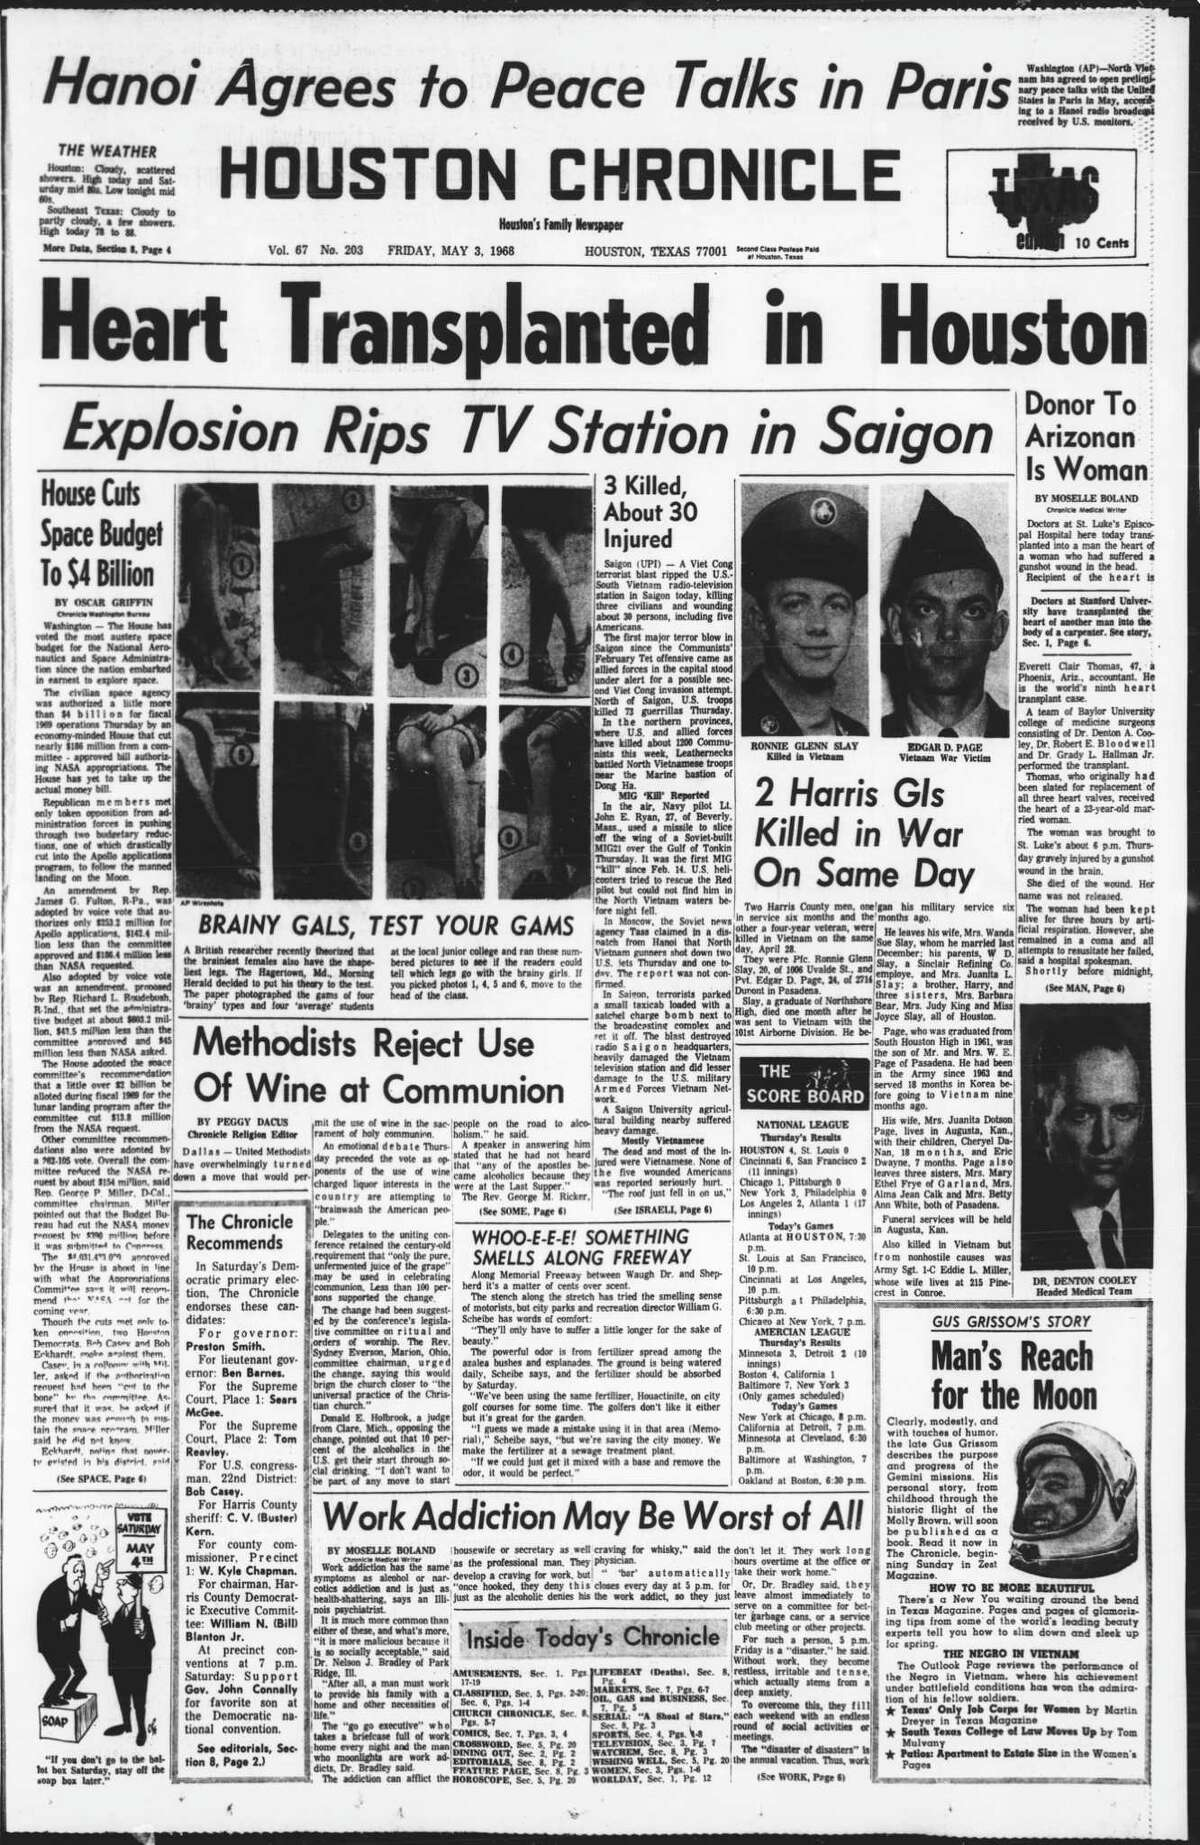 Houston Chronicle front pagem May 3, 1968 -- HEART TRANSPLANTED IN HOUSTON. In its May 3, 1968, edition, the Chronicle told the story of heart transplant by Dr. Denton Cooley, the first in which the patient survived more than a few weeks.